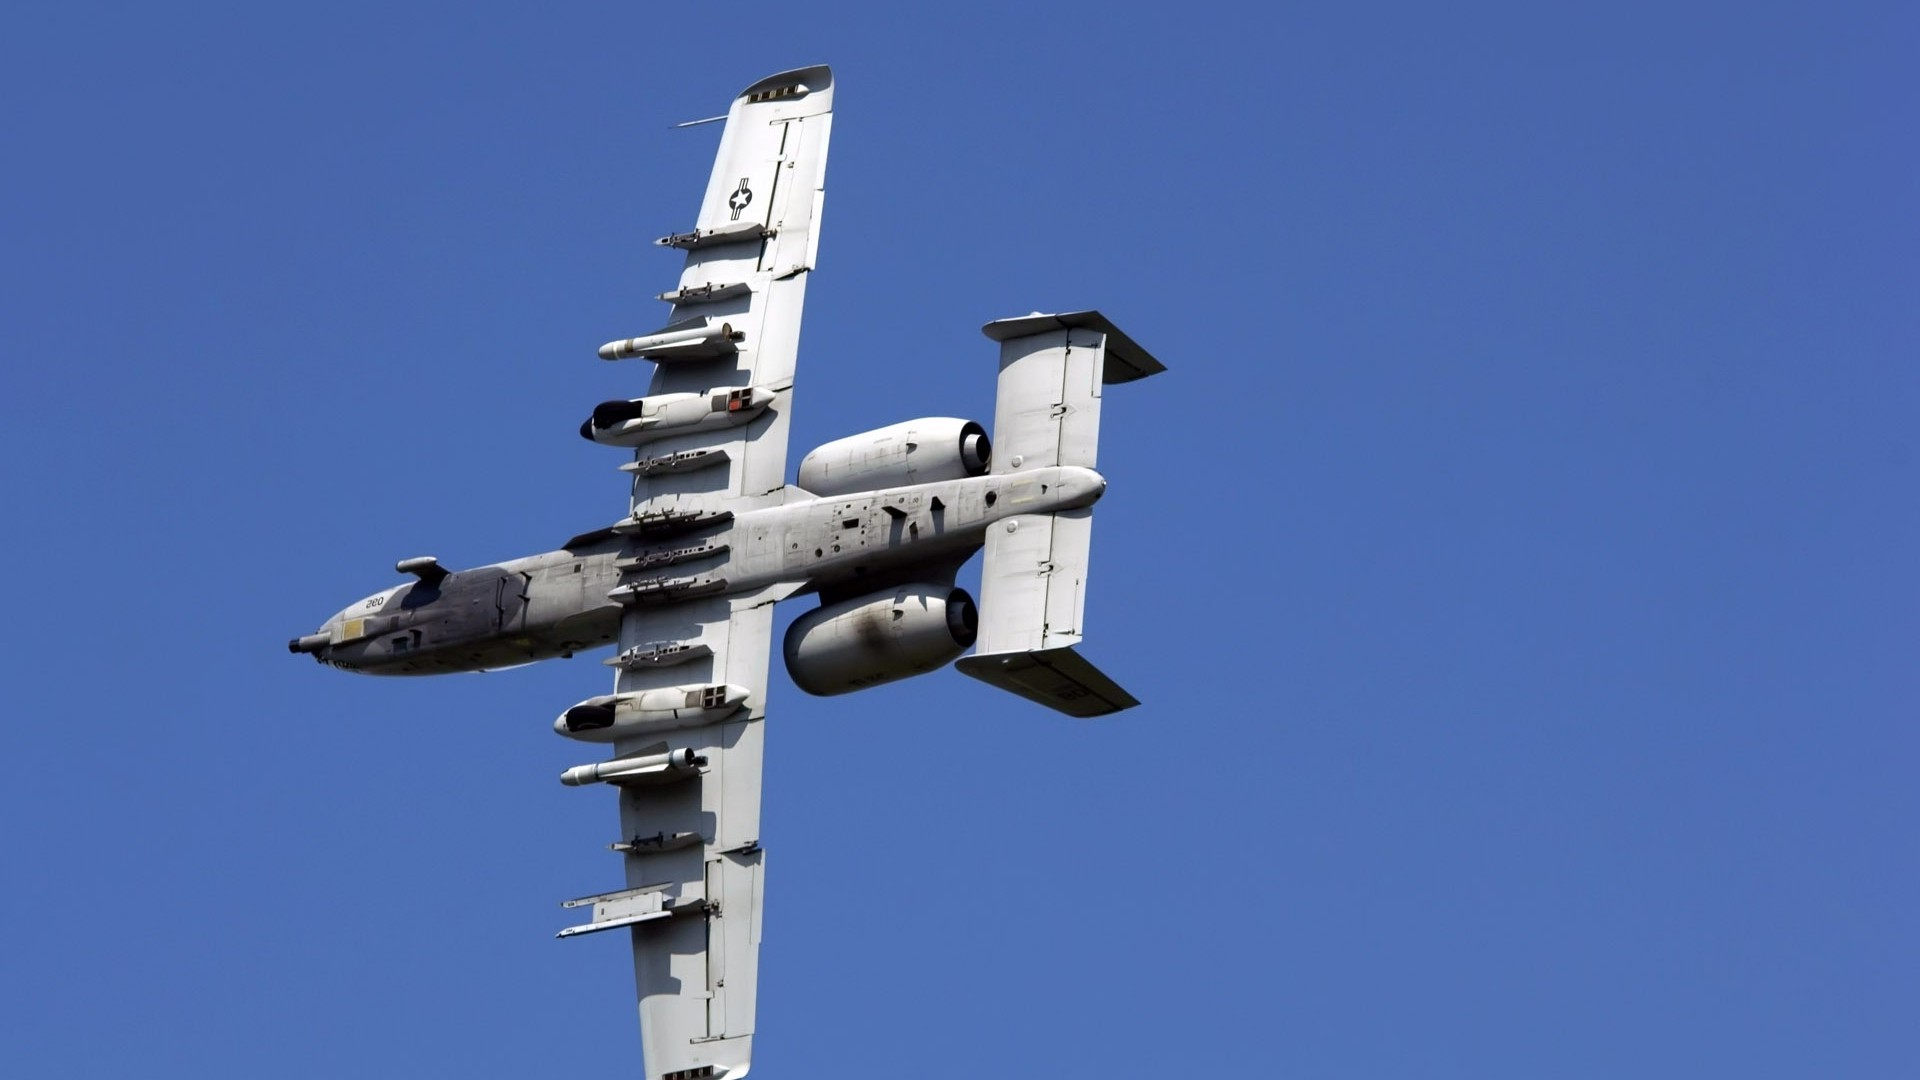 military Aircraft, Airplane, Jets, Fairchild A 10 Thunderbolt II Wallpapers  HD / Desktop and Mobile Backgrounds